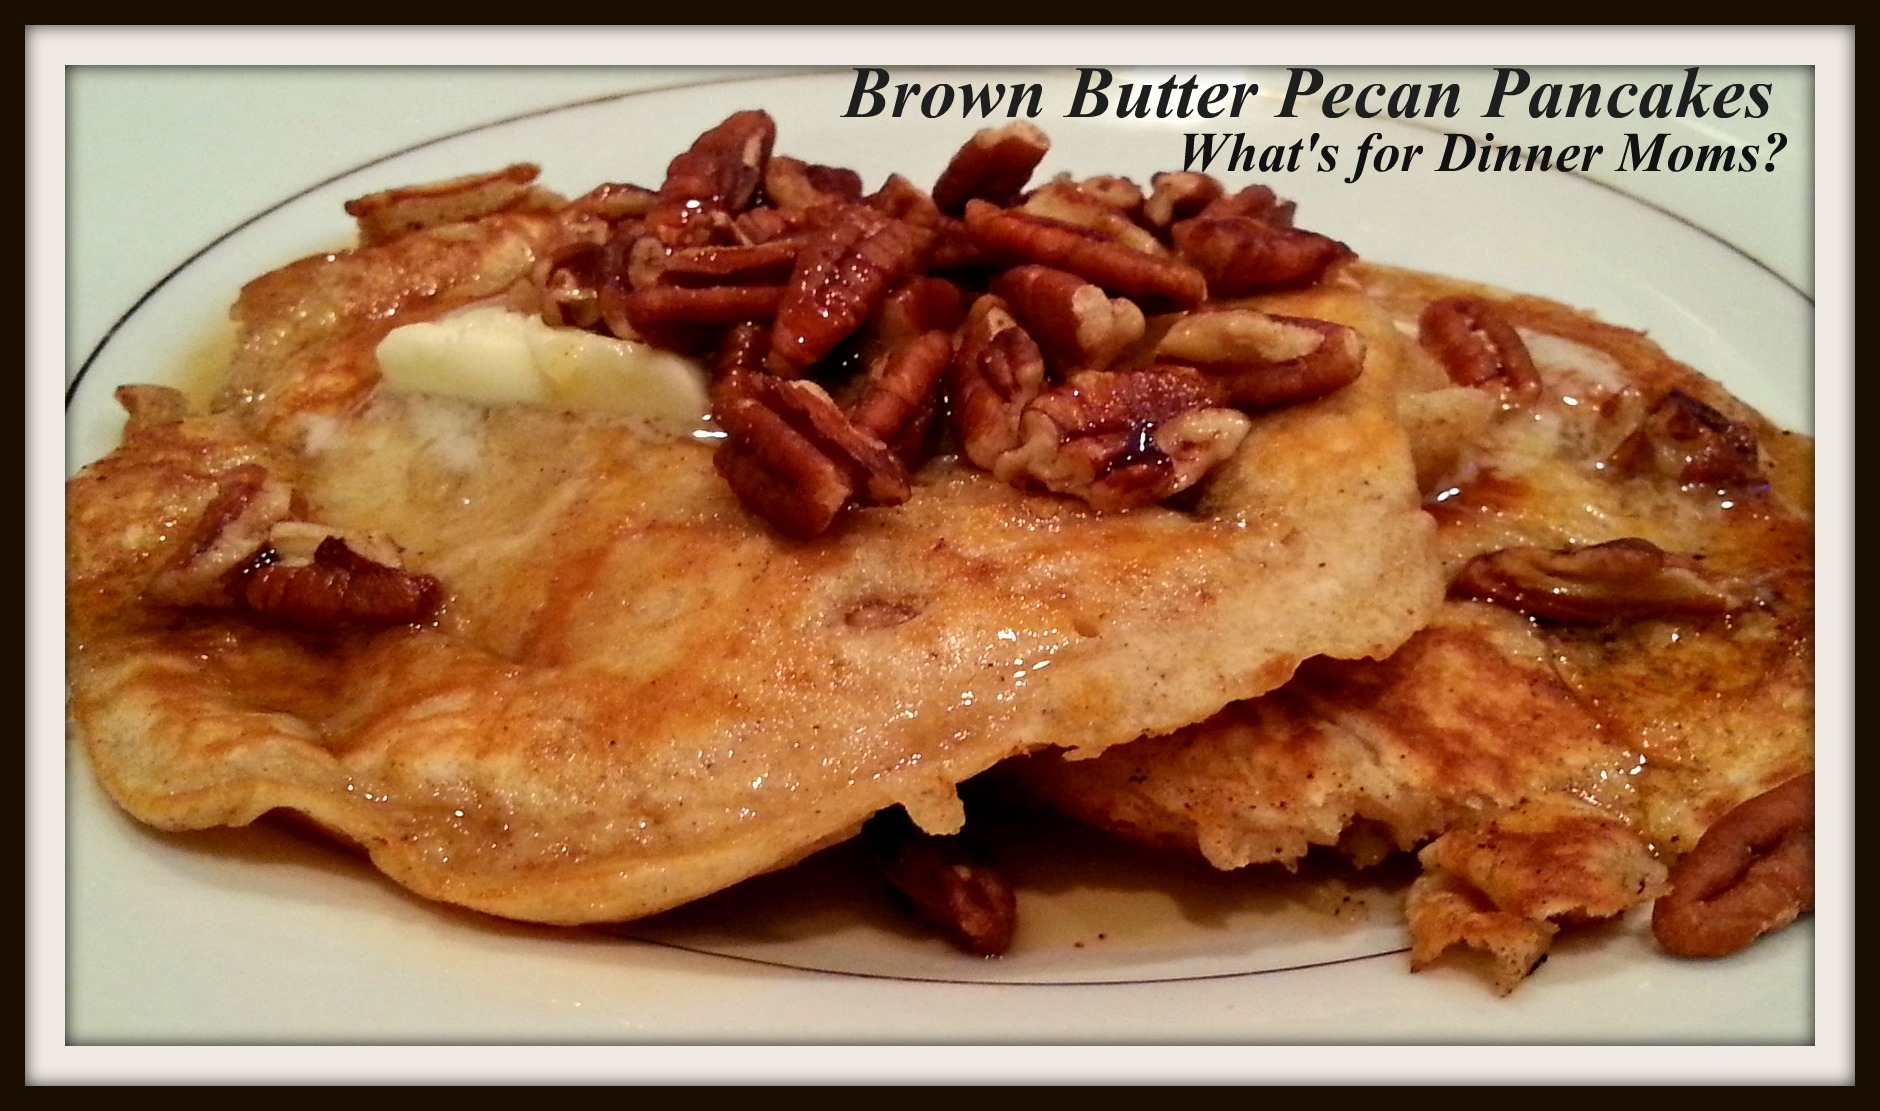 Brown Butter Pecan Pancakes – The End of School is Near ...